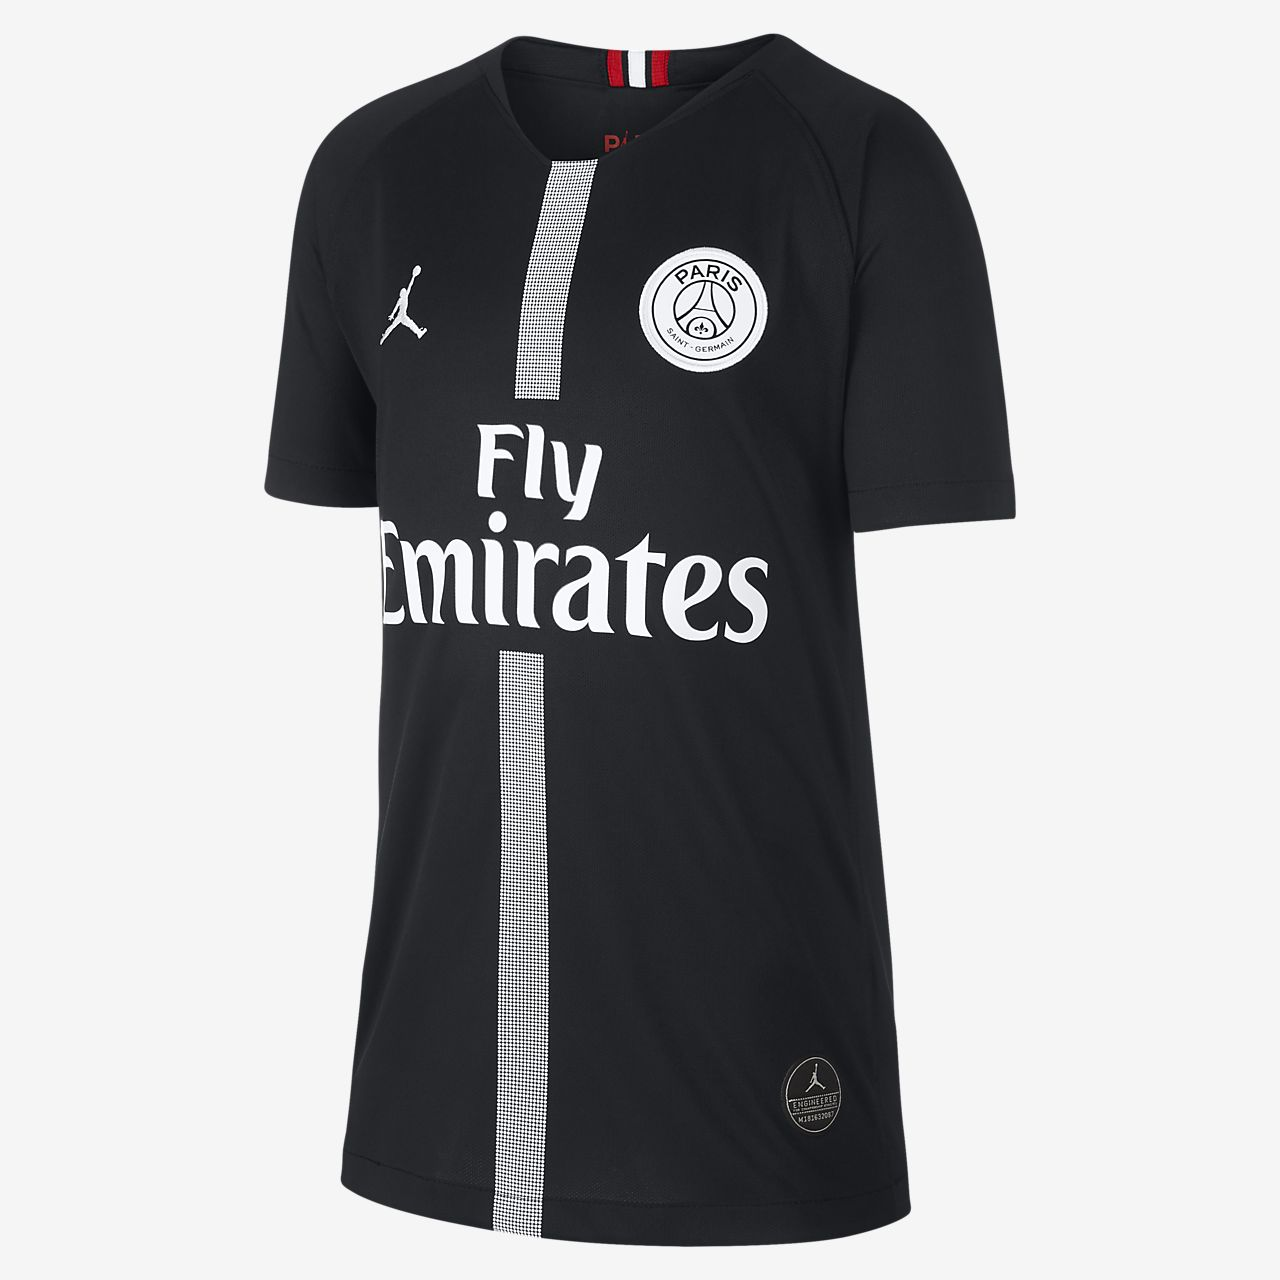 Camiseta de fútbol para niños talla grande alternativa Stadium del Paris Saint-Germain 2018/19